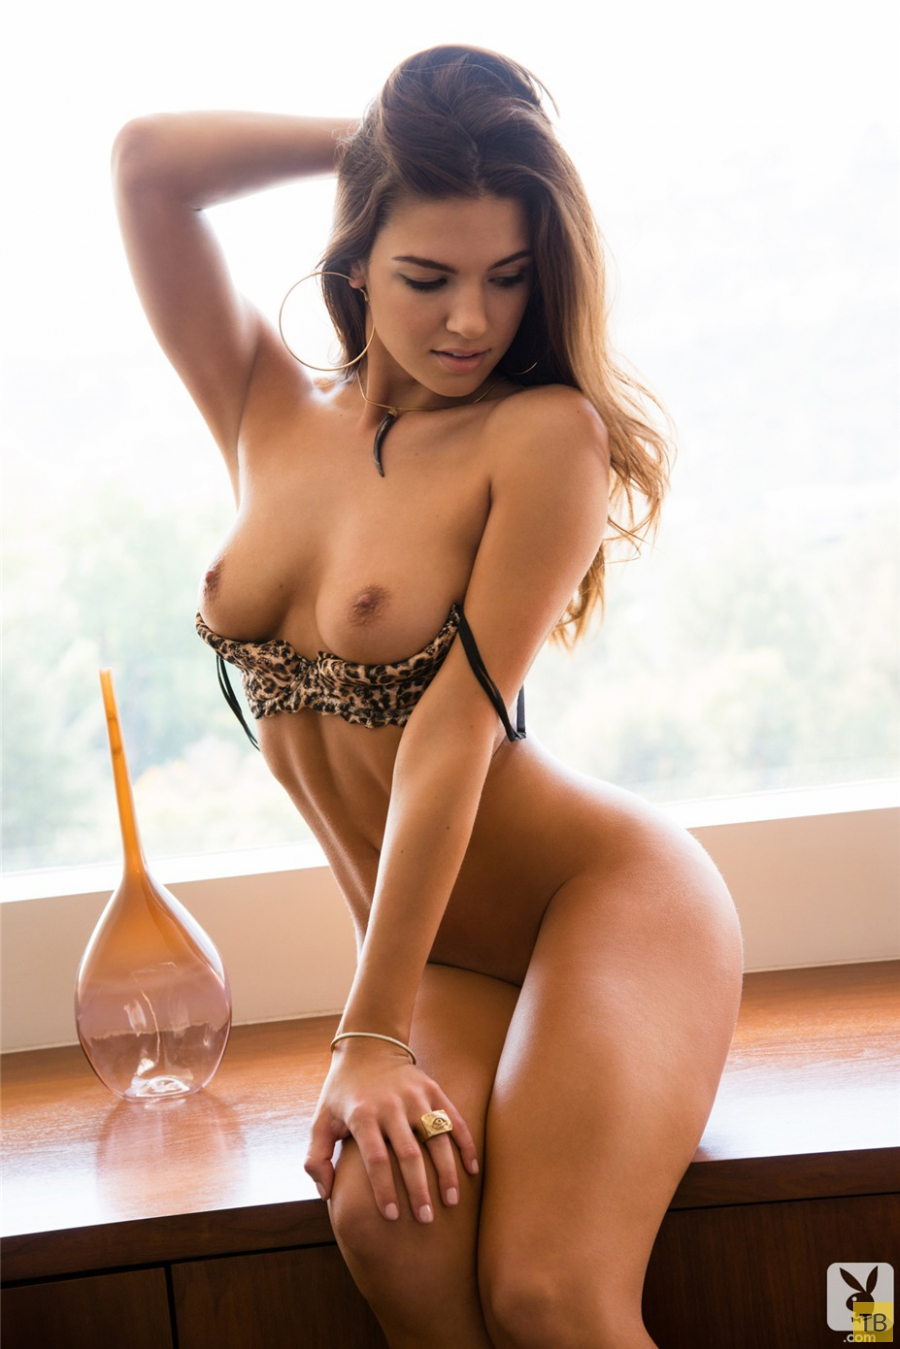 (18+) Девушка месяца - Джессика Эшли (Jessica Ashley) | Playboy USA, июнь 2014 (27 фото)